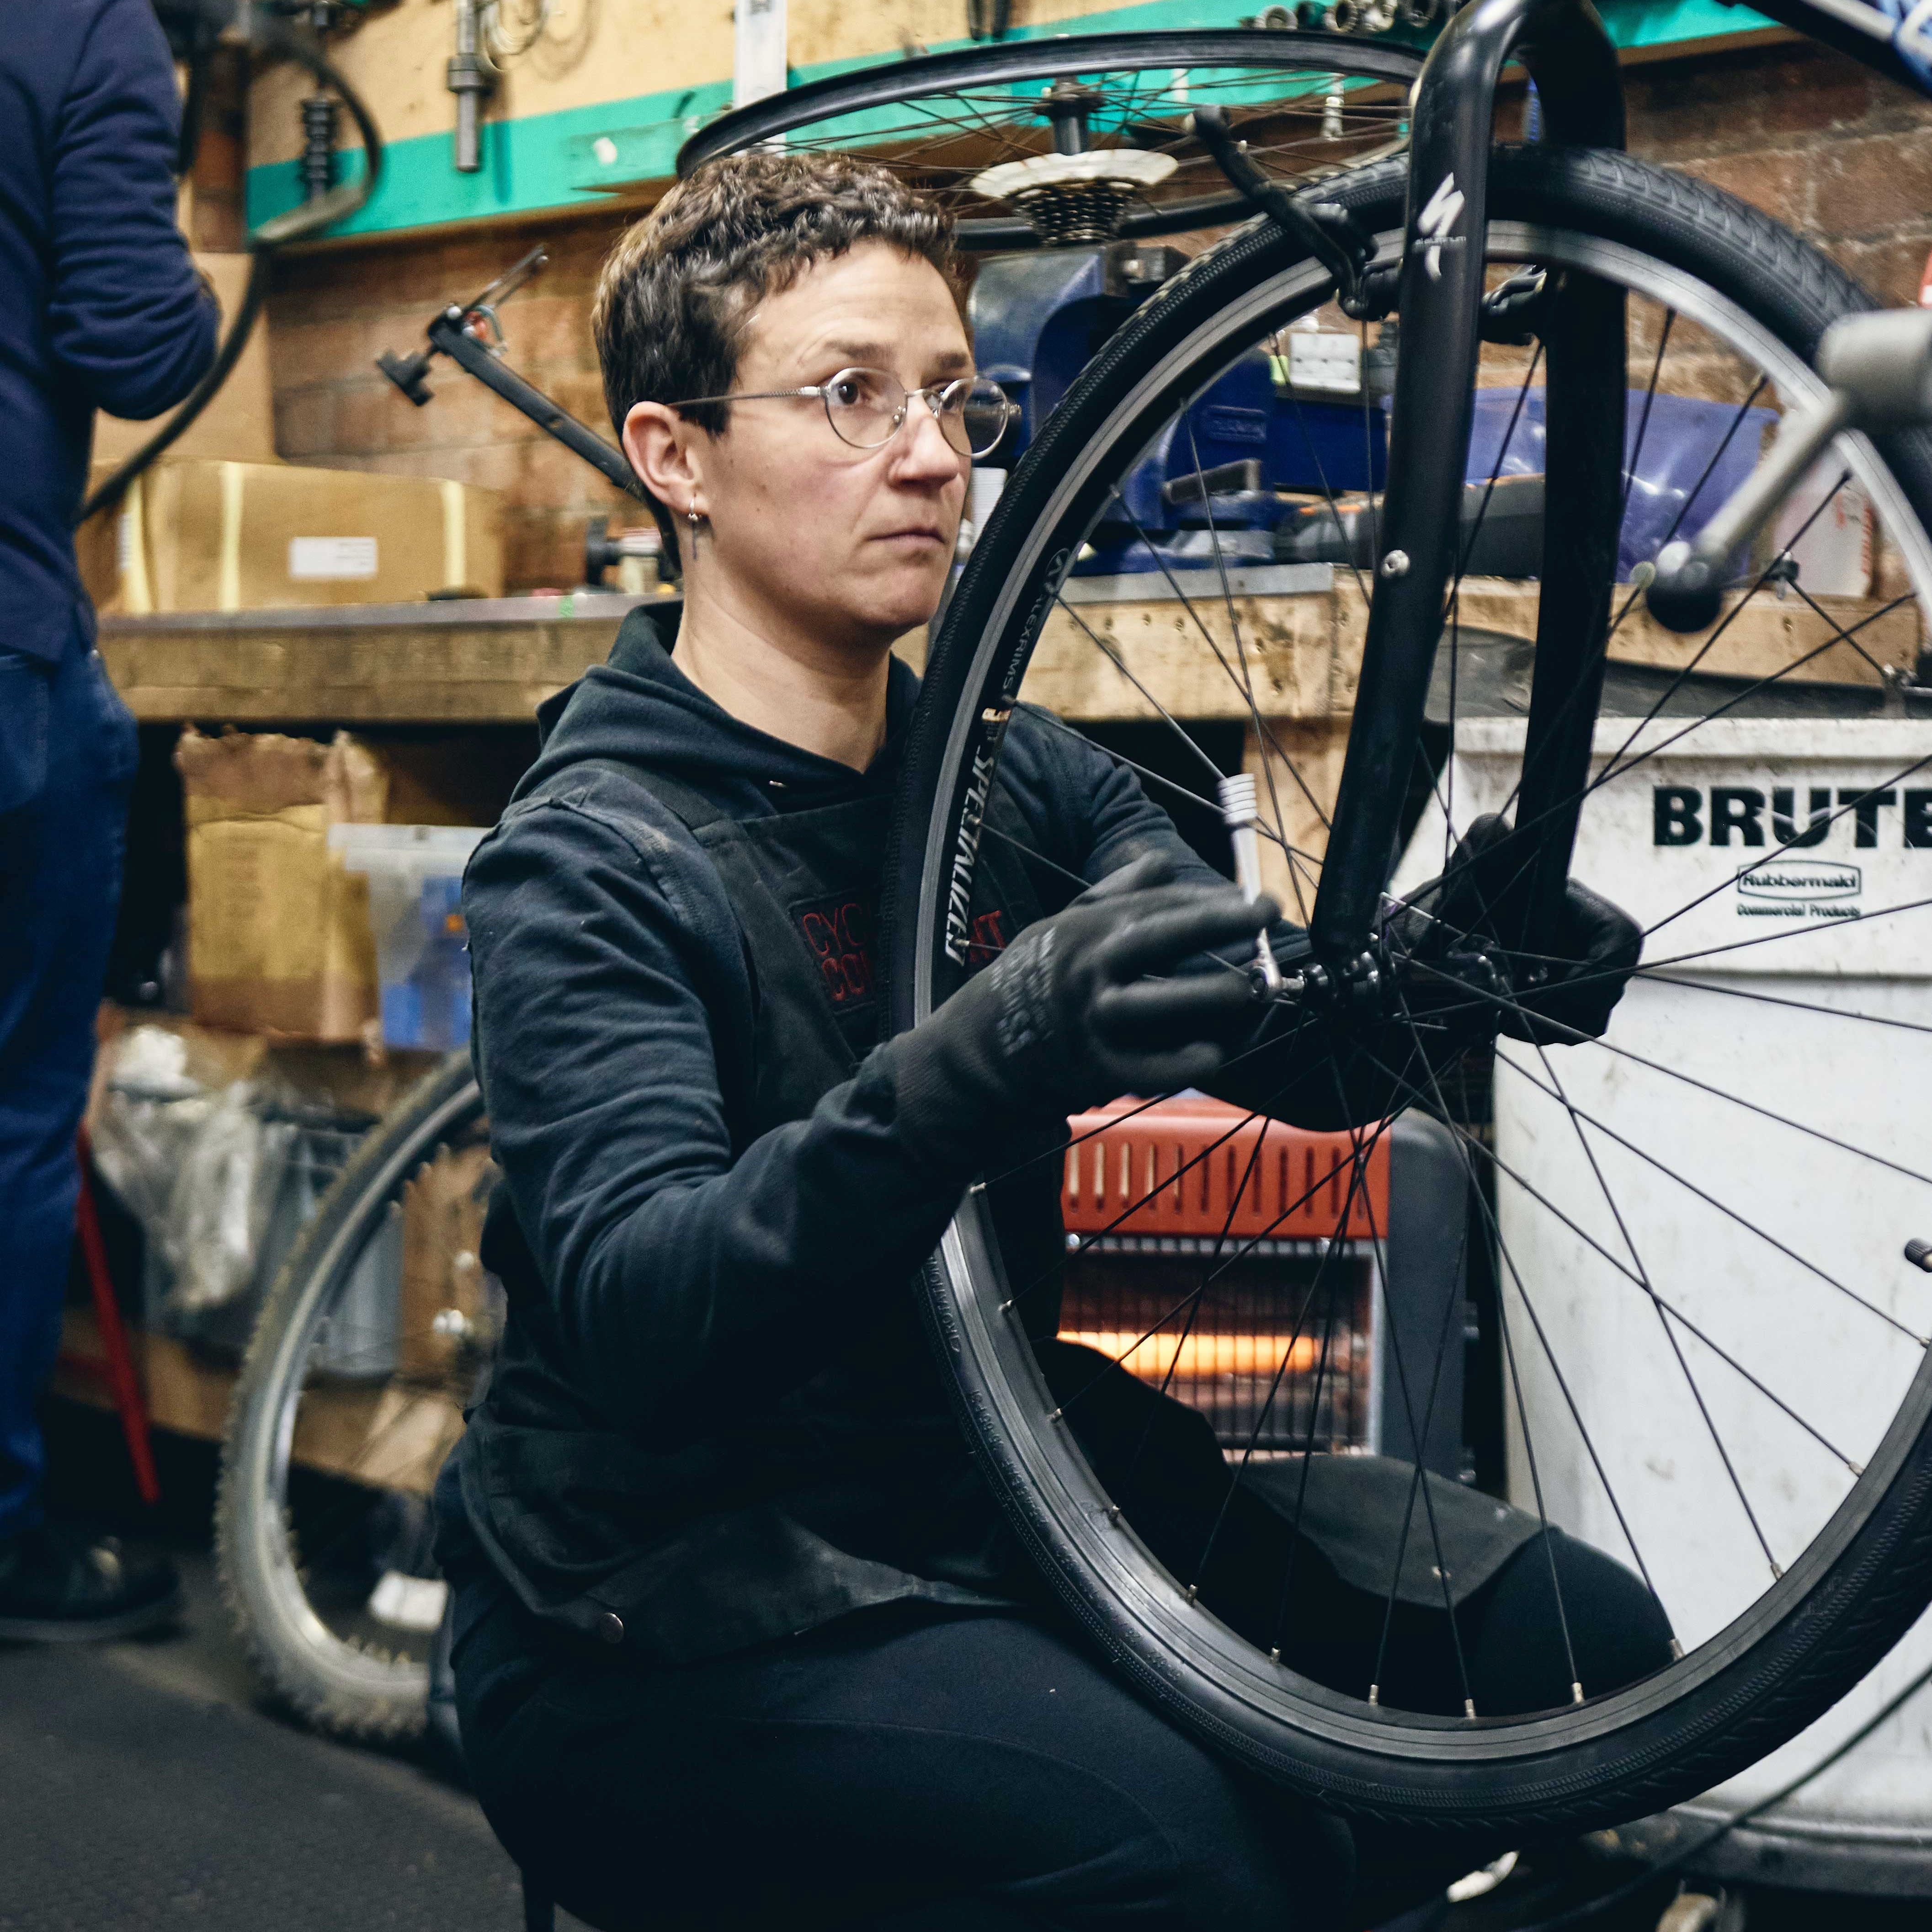 A mechanic fixing up a bike in The Bike Project's workshop.